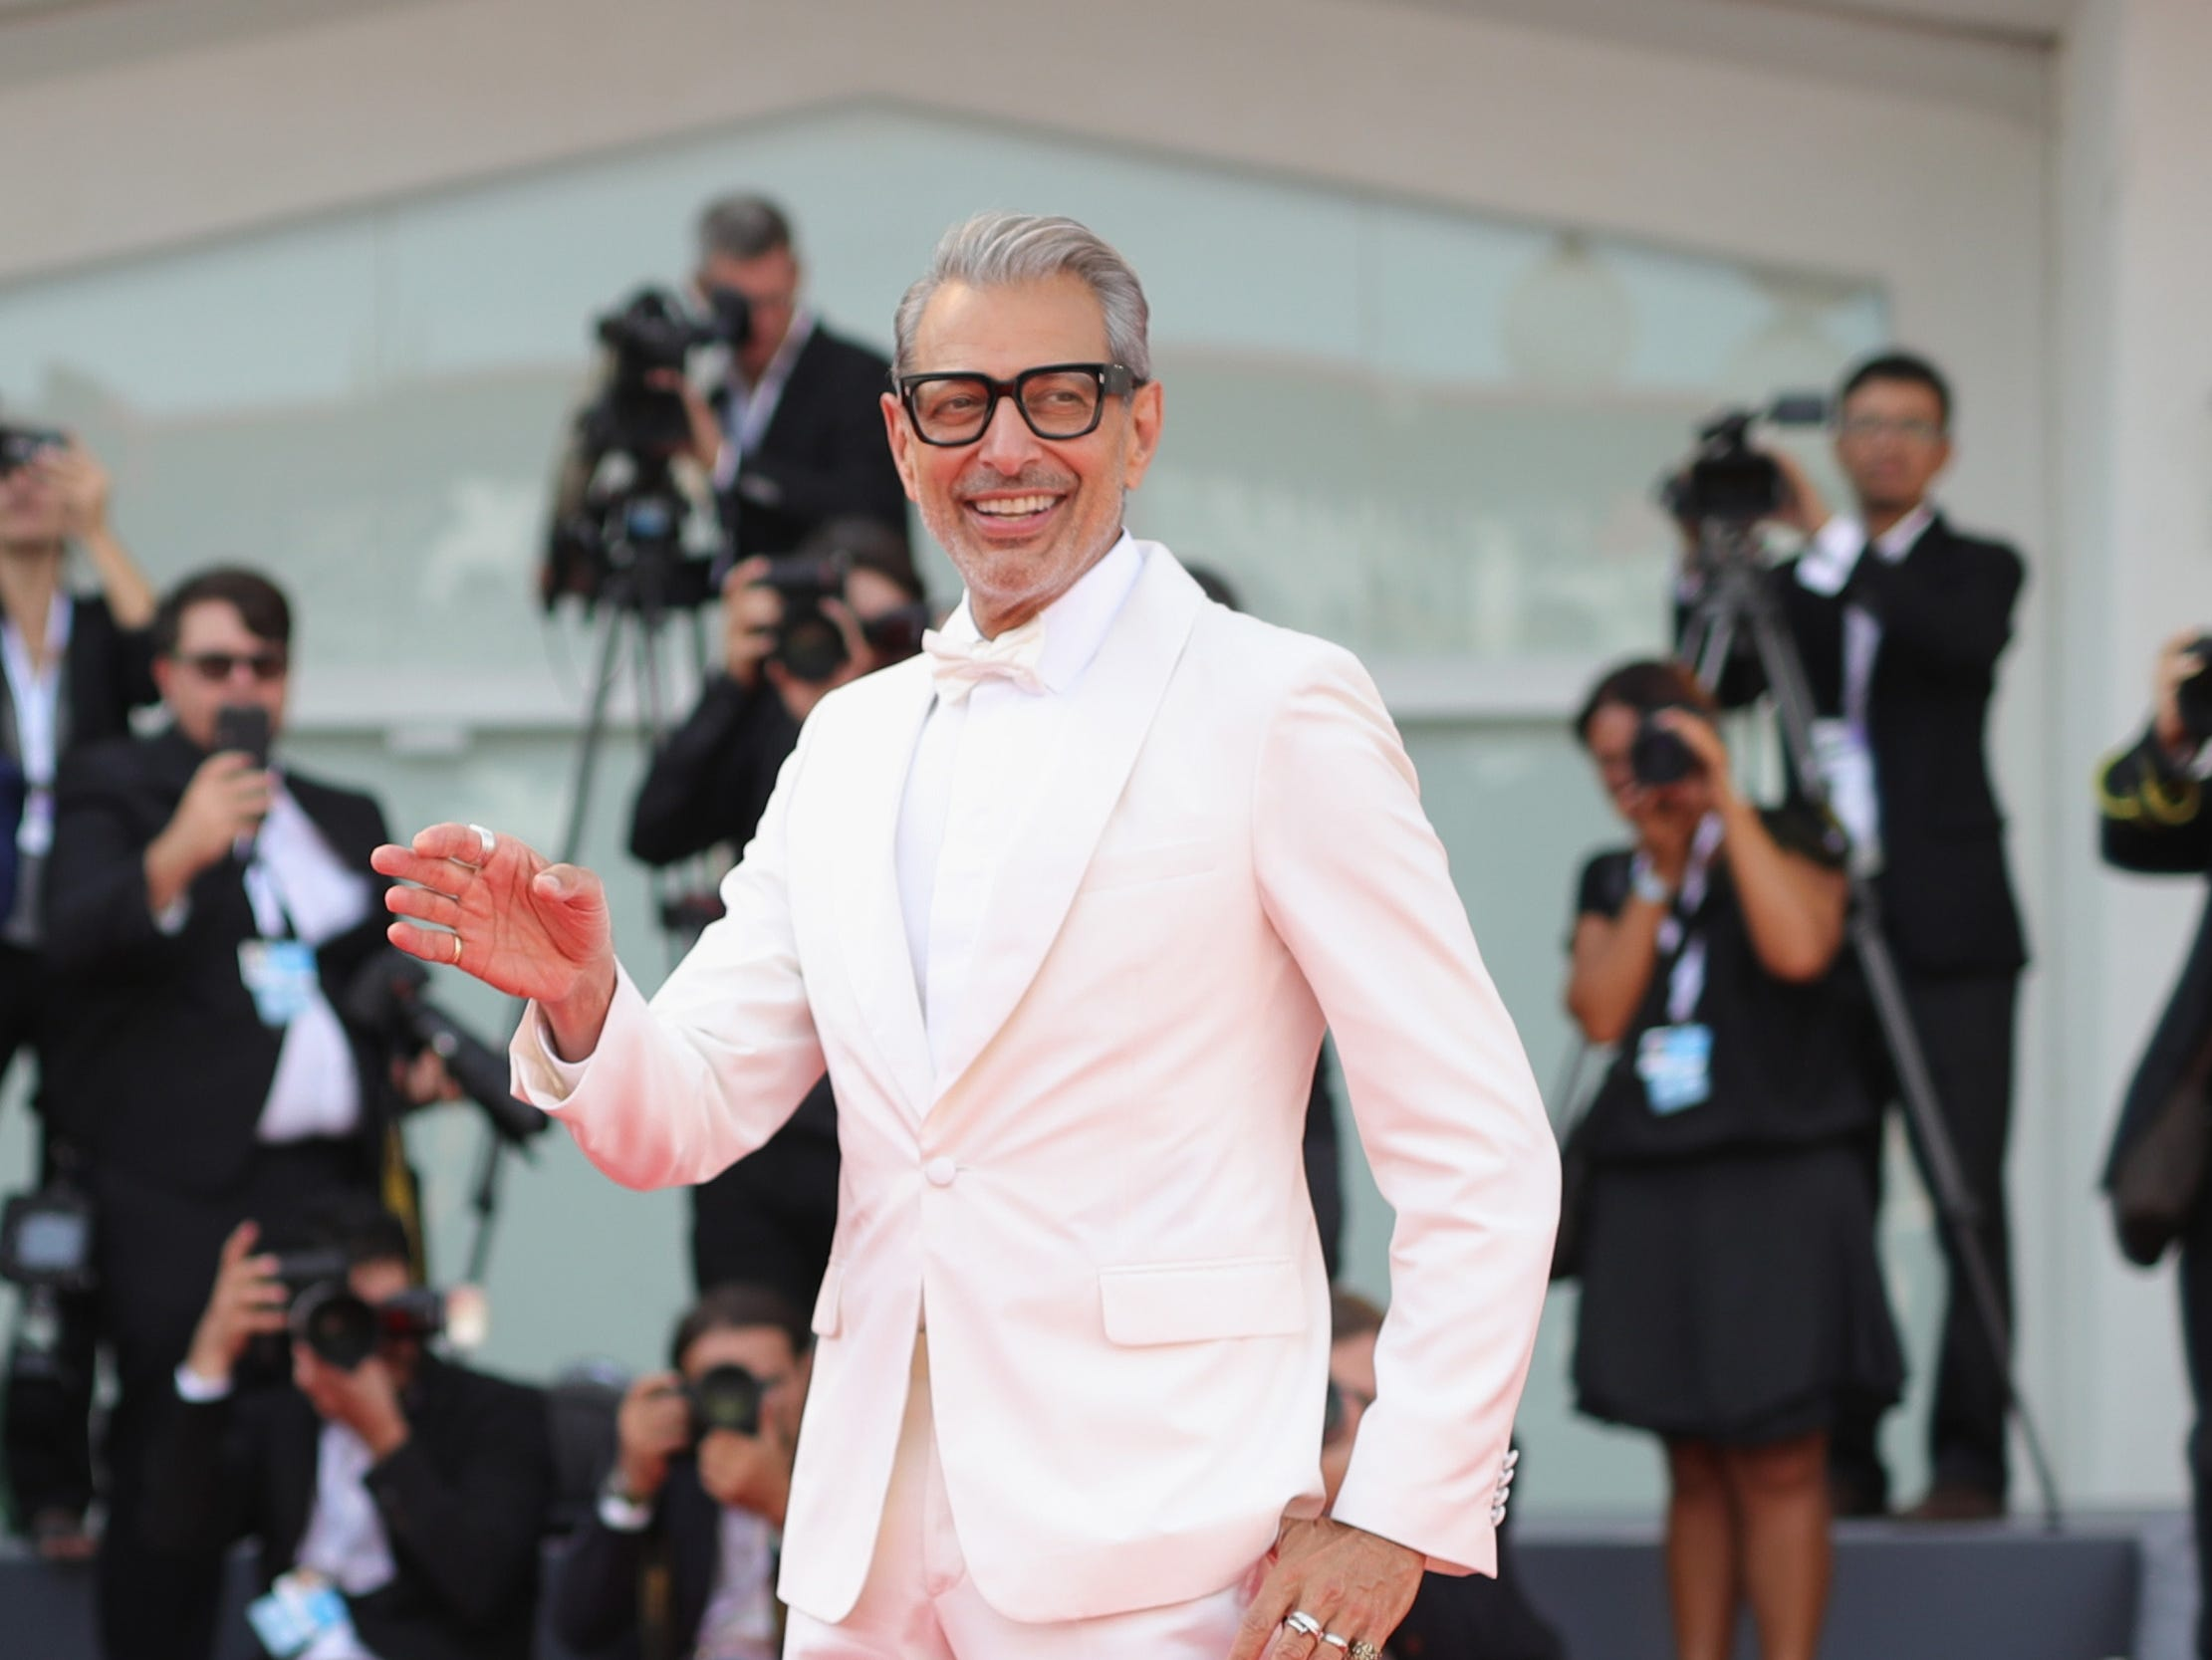 VENICE, ITALY - AUGUST 30:  walks the red carpet ahead of the 'The Mountain' screening during the 75th Venice Film Festival at Sala Grande on August 30, 2018 in Venice, Italy.  (Photo by Andreas Rentz/Getty Images) ORG XMIT: 775200672 ORIG FILE ID: 1025262058